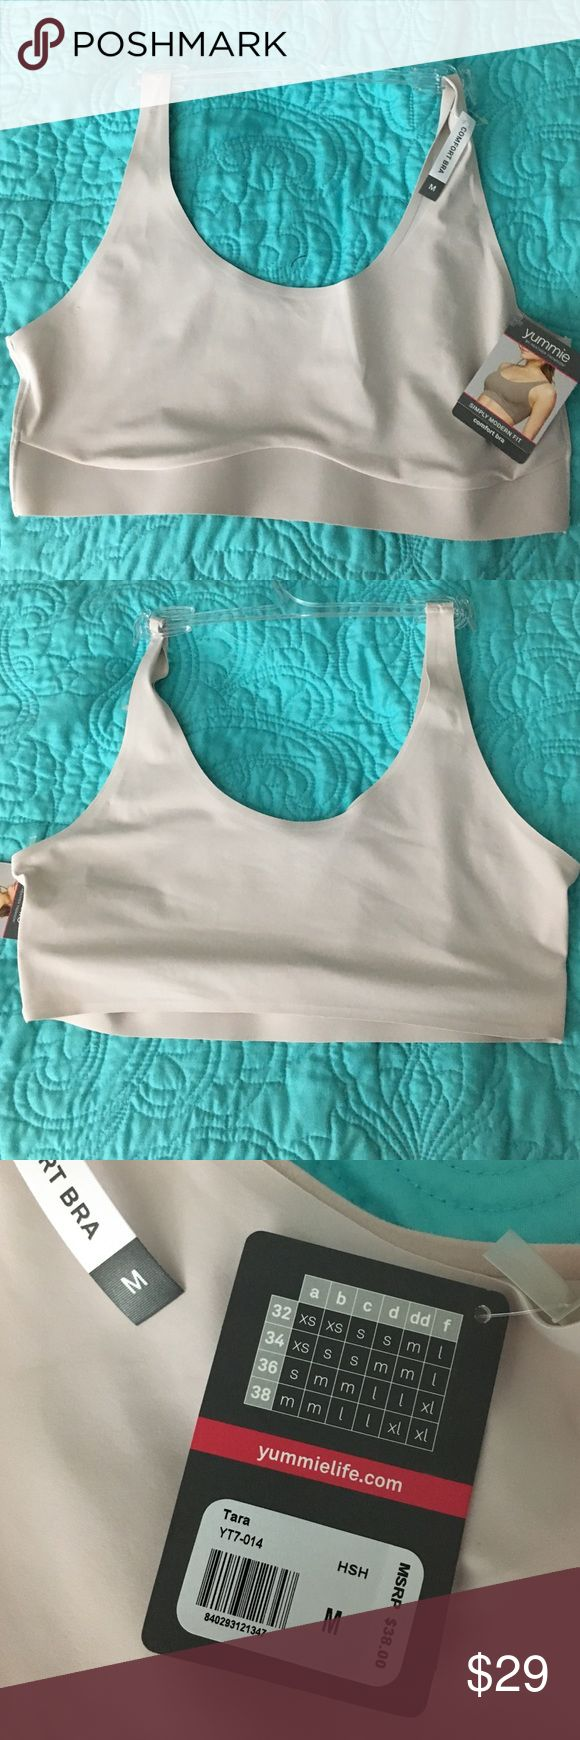 NWT Yummie Comfort Bra M REDUCED!! 💥 NWT Yummie Comfort Bra M. Simply modern fit. Disappearing edge means no show under clothing, wide side and back panels for no lumps and bumps, closure FREE for a clean look, pull over your head or step in and shimmy up. Light pinky beige, retail $38 Yummie by Heather Thomson Intimates & Sleepwear Bras